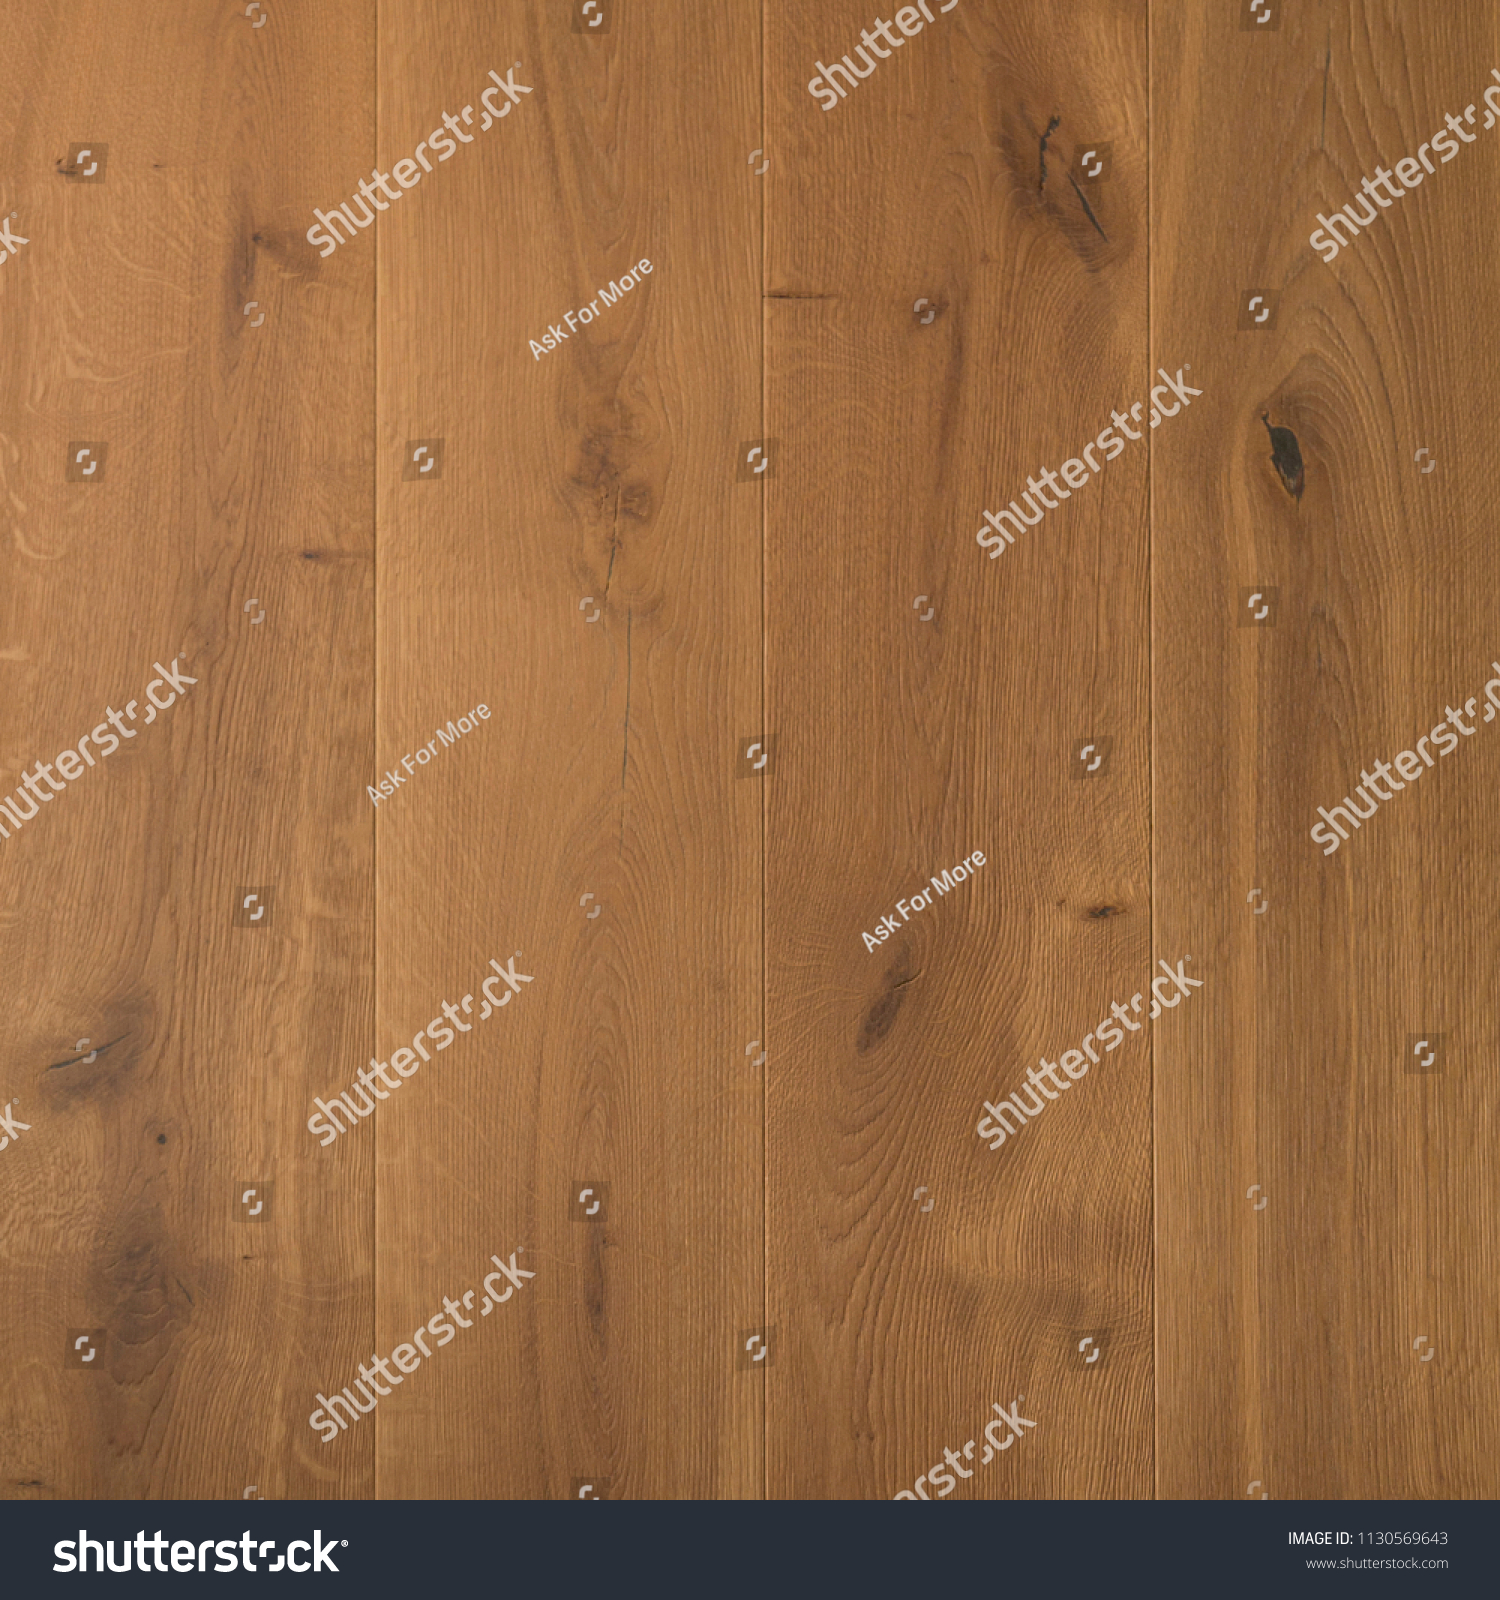 Bois Parquet Wood Floor Parquet Bois Holz Stock Photo Edit Now 1130569643